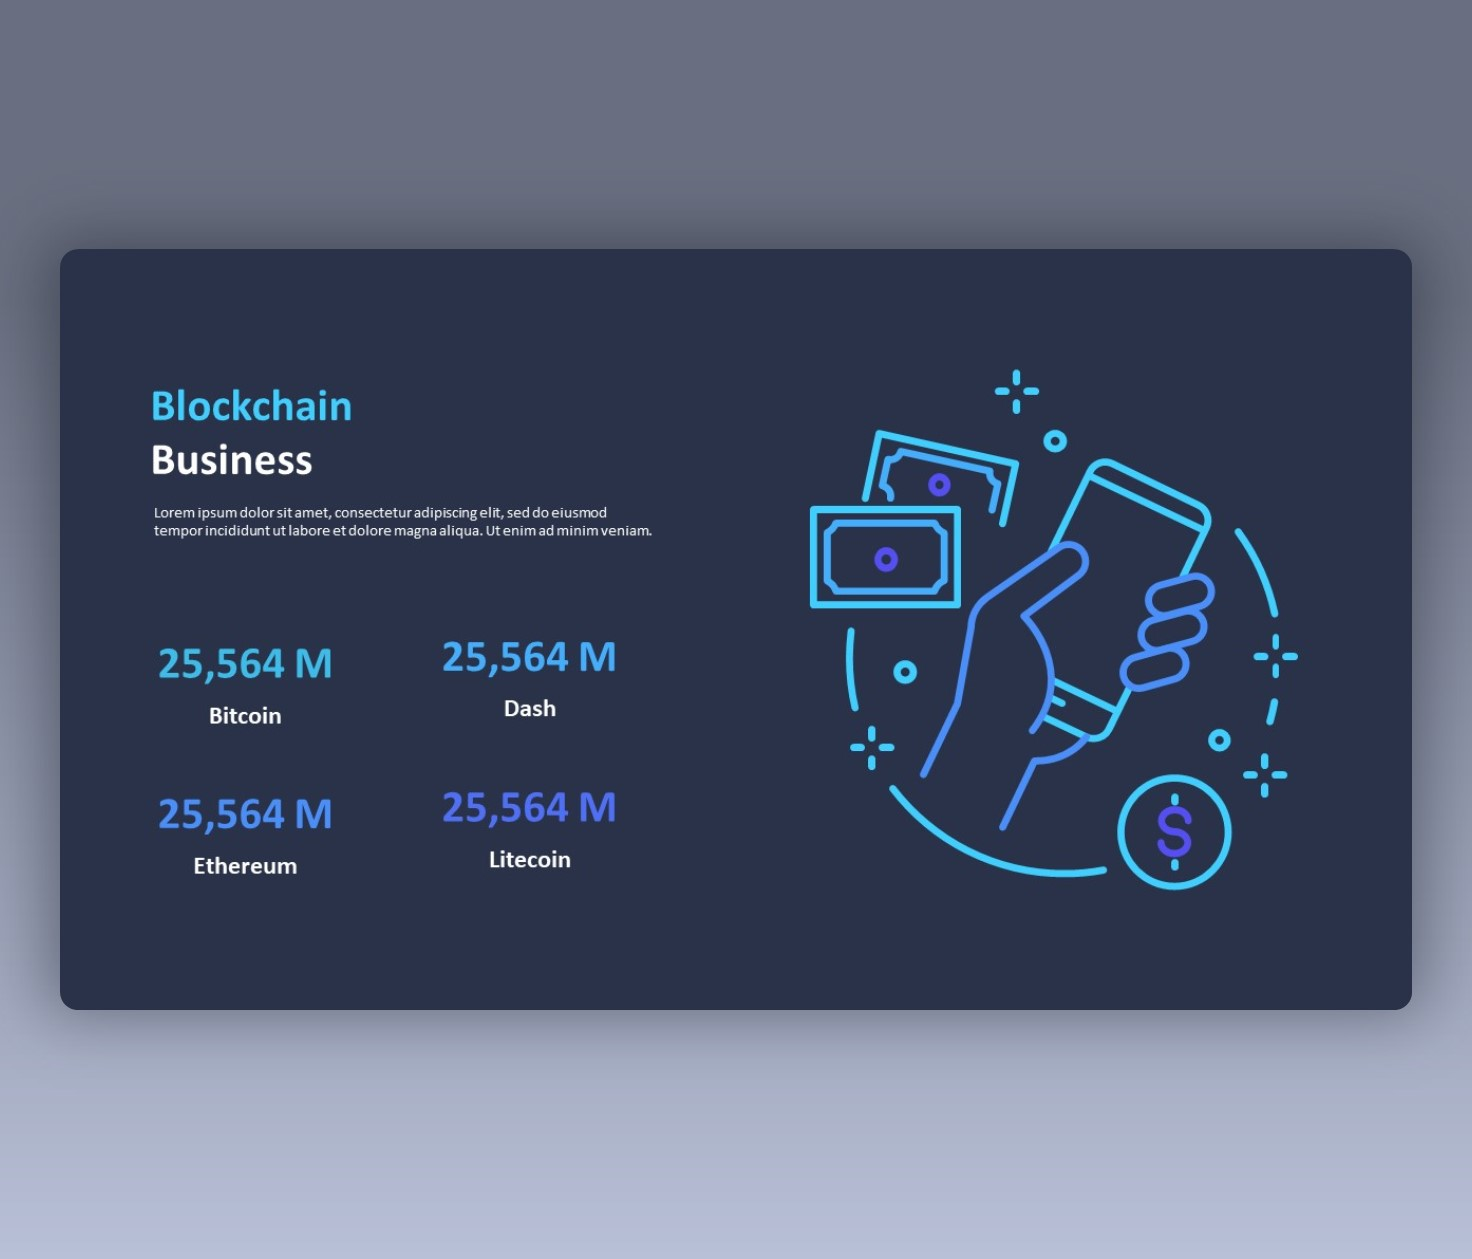 Blockchain Presentation Slide for Business